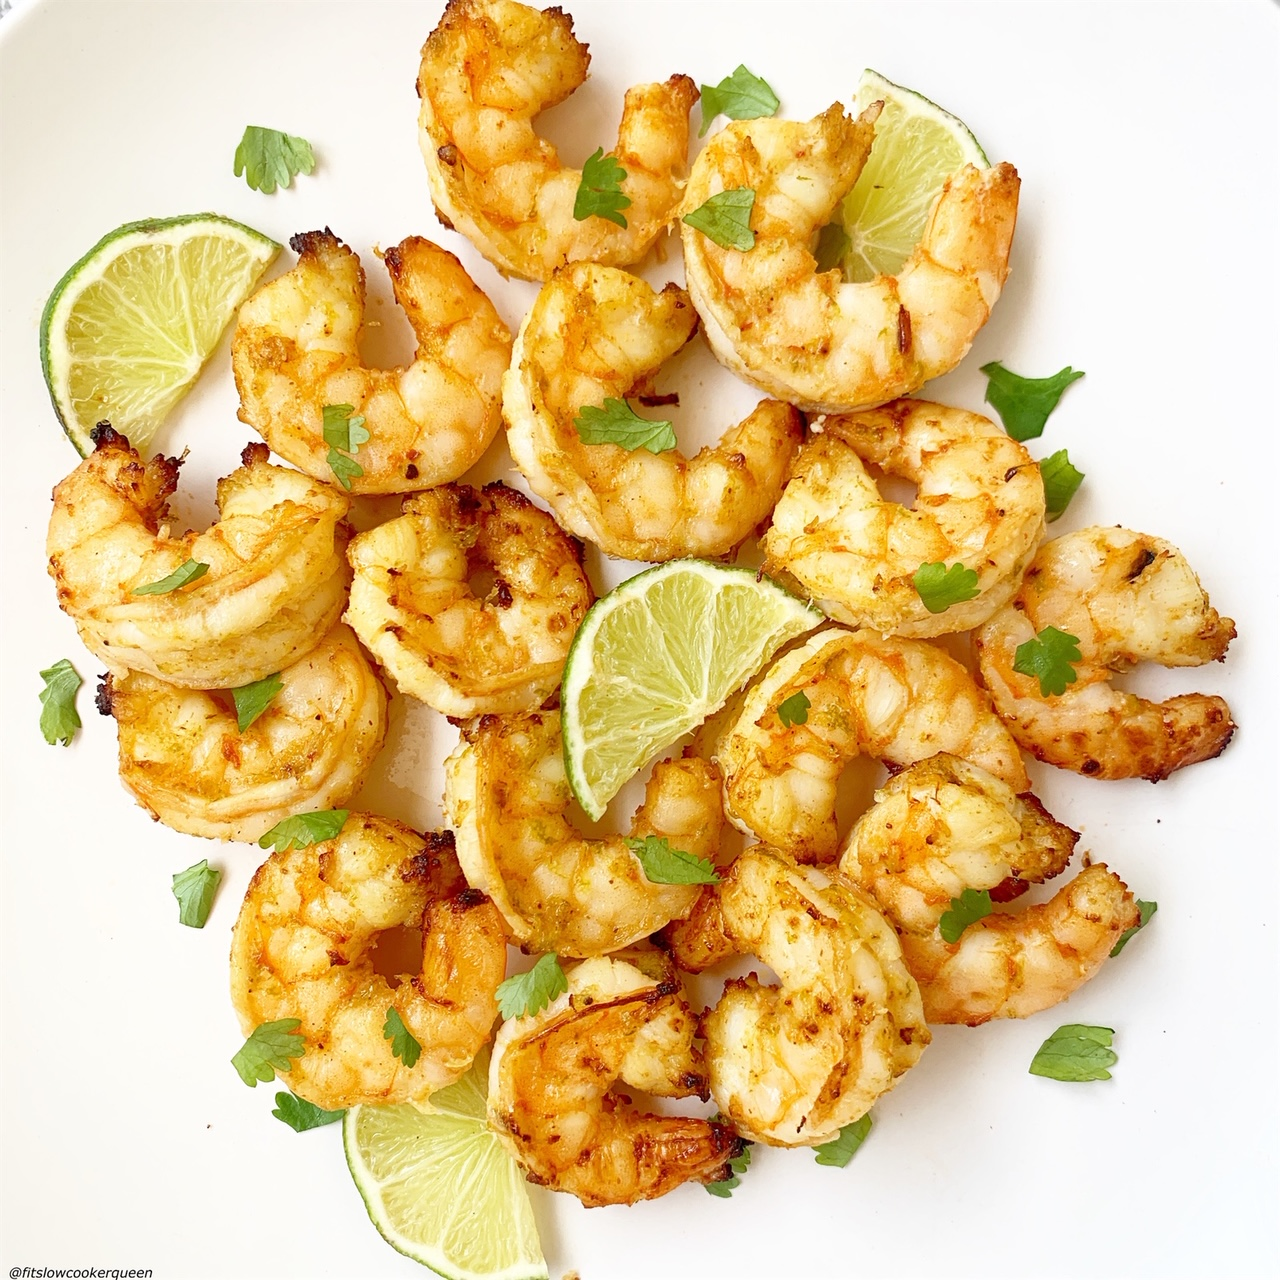 cooked air fryer shrimp on a plate with lime wedges and cilantro garnish